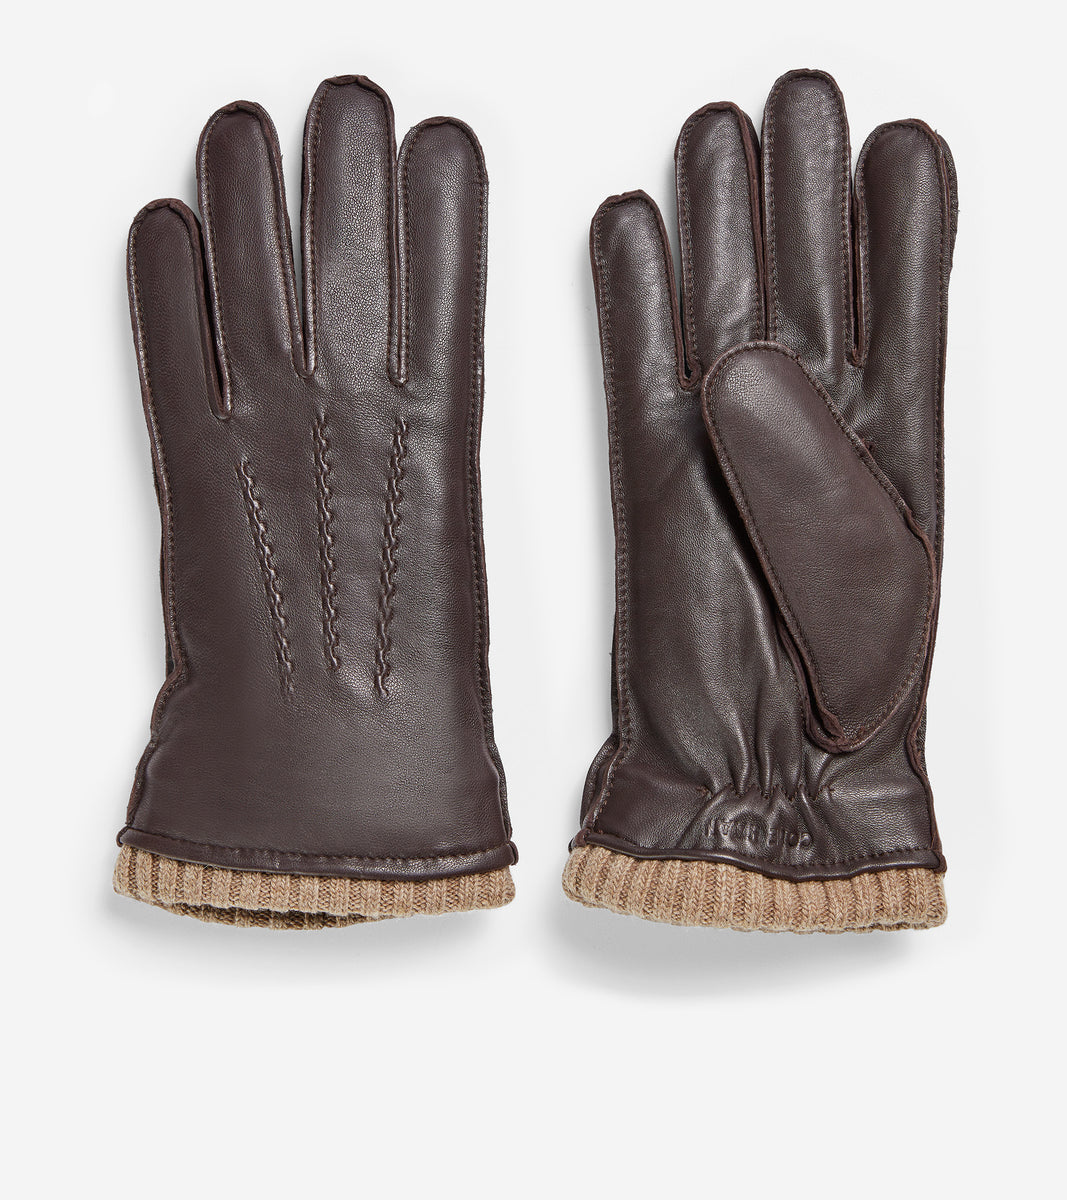 GRANDSERIES Leather Knit Cuff Glove